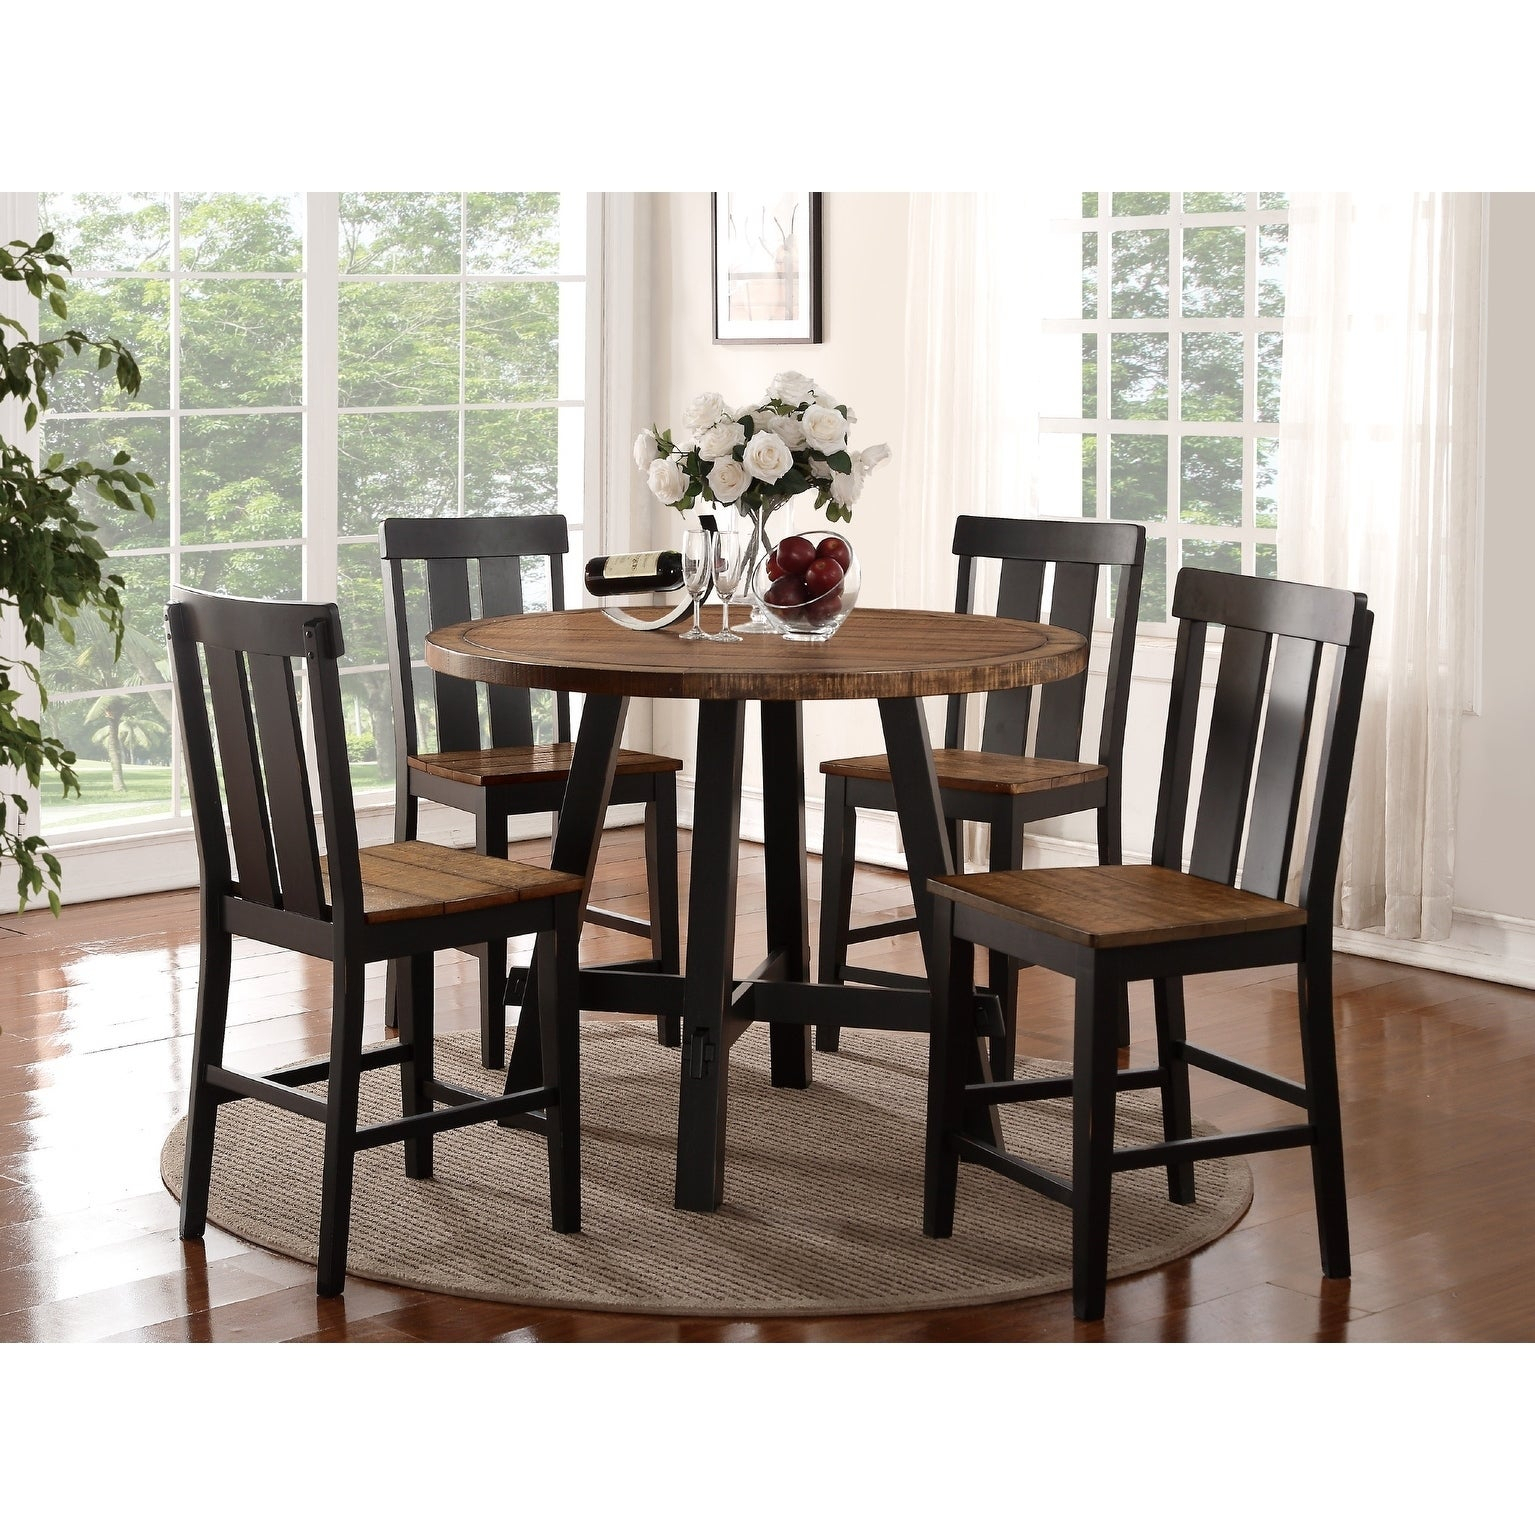 Shop Goodman 5 Piece Counter Height Dining Set – Free Shipping Today Throughout Newest Goodman 5 Piece Solid Wood Dining Sets (Set Of 5) (#15 of 20)